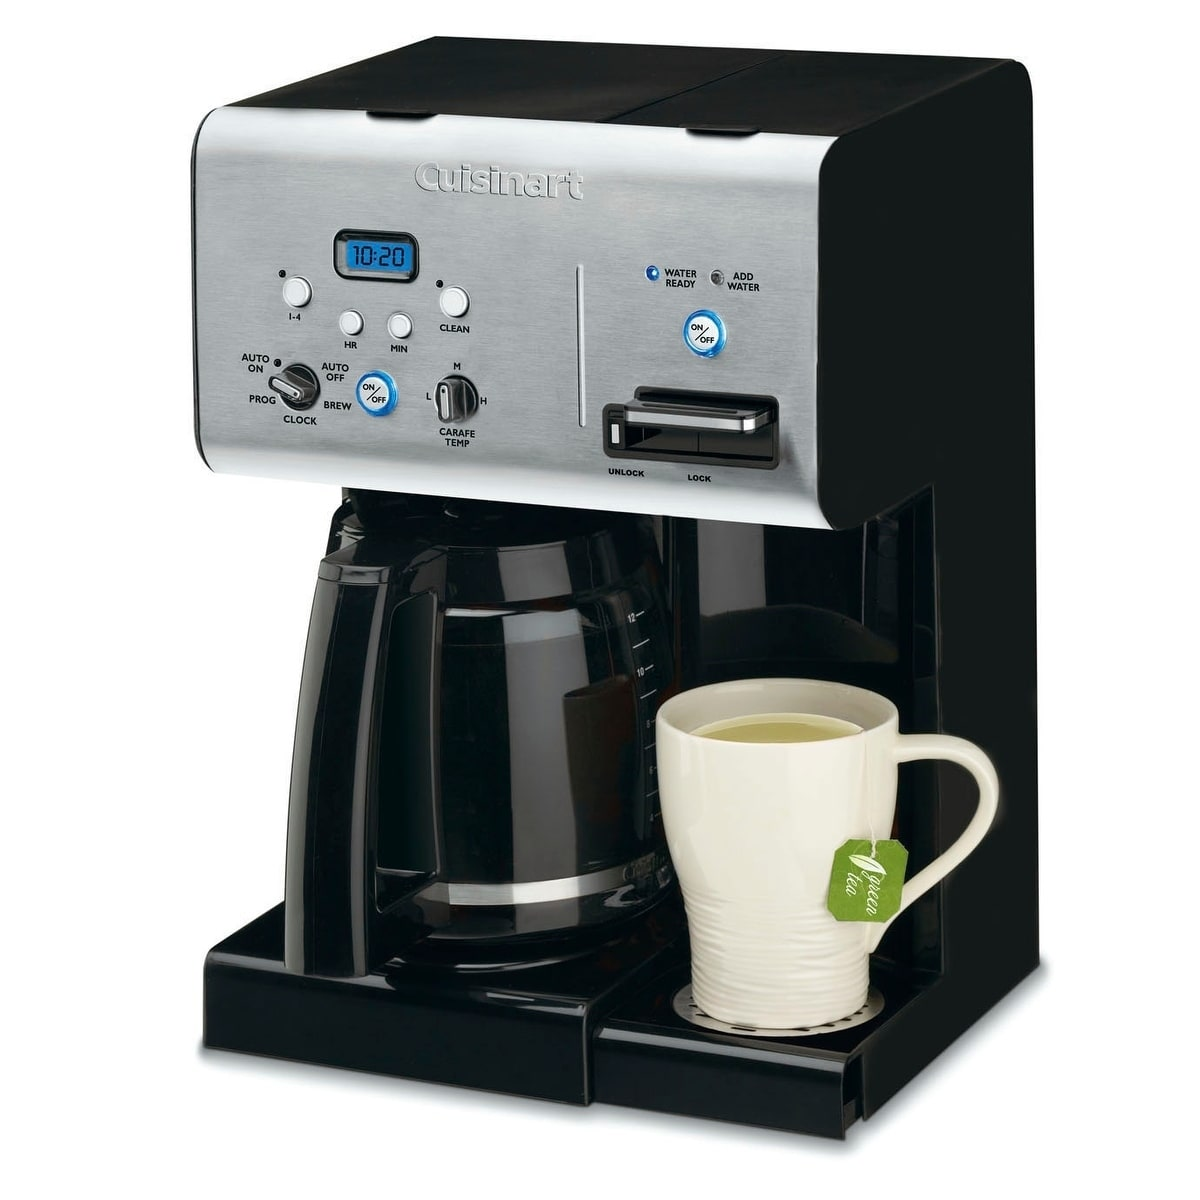 Cuisinart chw cup programmable coffeemaker with hot water